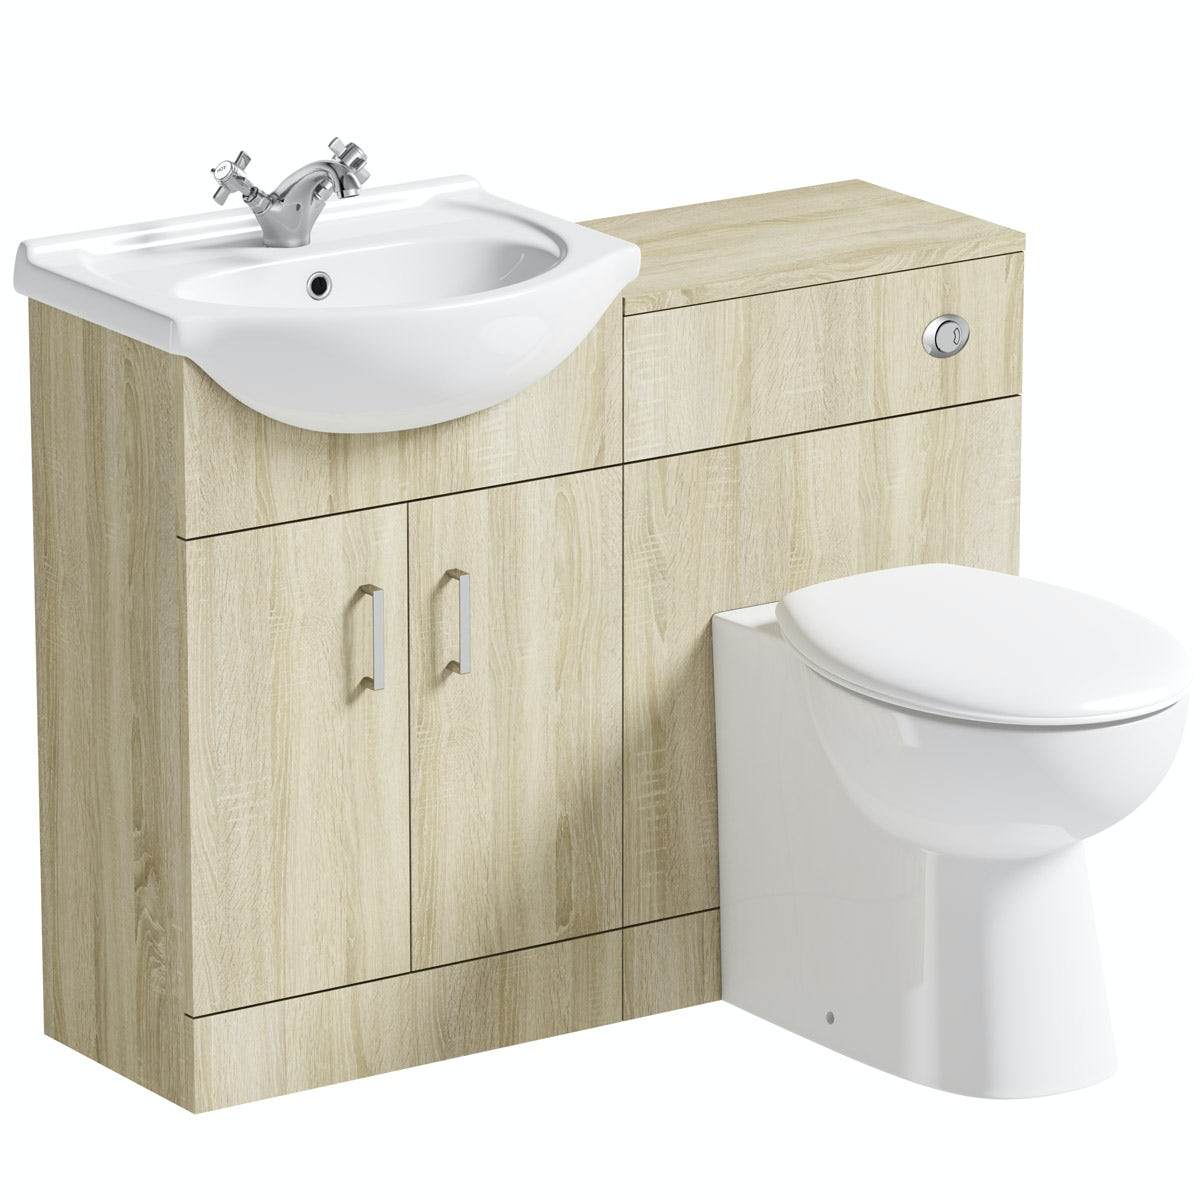 Orchard Eden oak 1040 combination with Clarity back to wall toilet